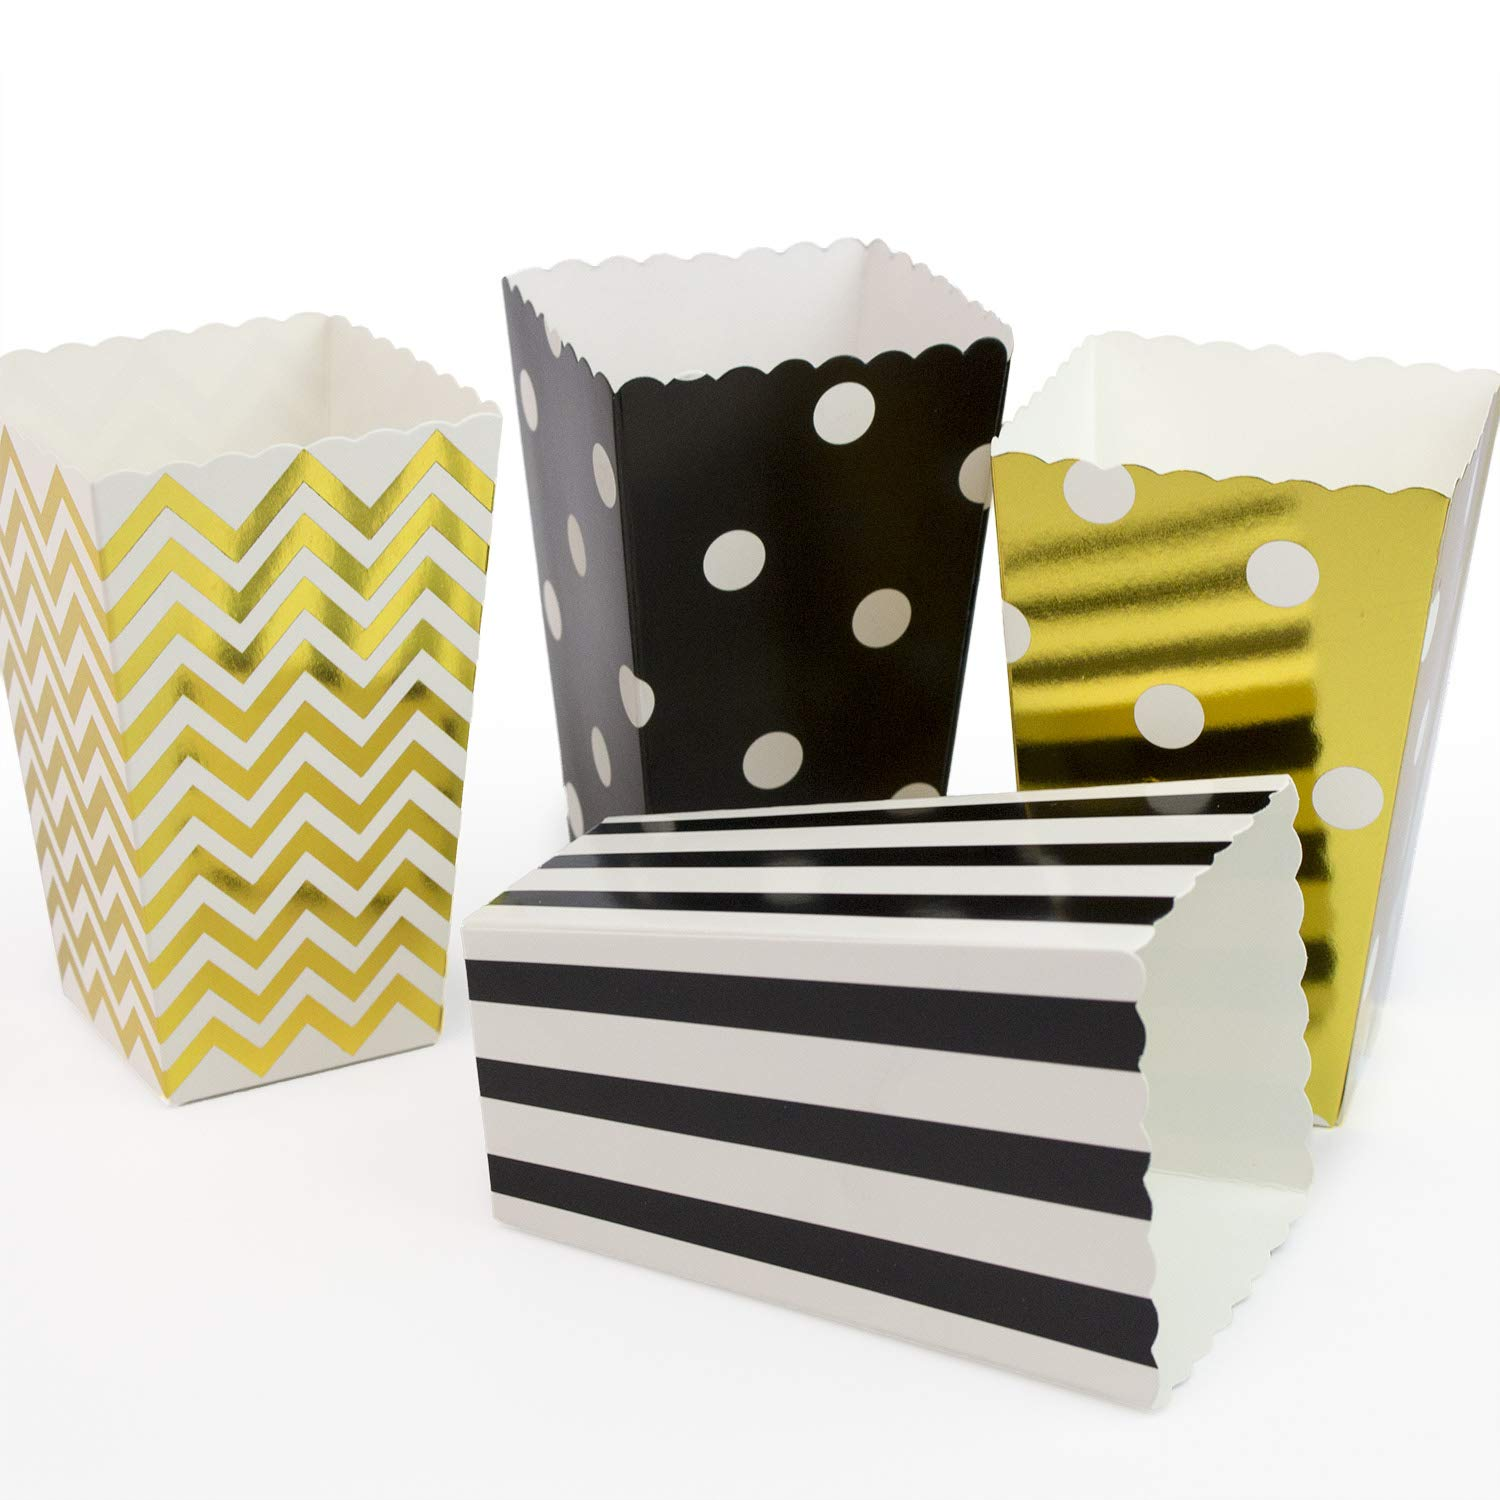 48pcs Popcorn Boxes Gold and Black, Striped, Chevron, Polka Dot Paper Candy Container for Weddings, Birthday Parties,Carnival Party,Baby Showers,Movie Theater